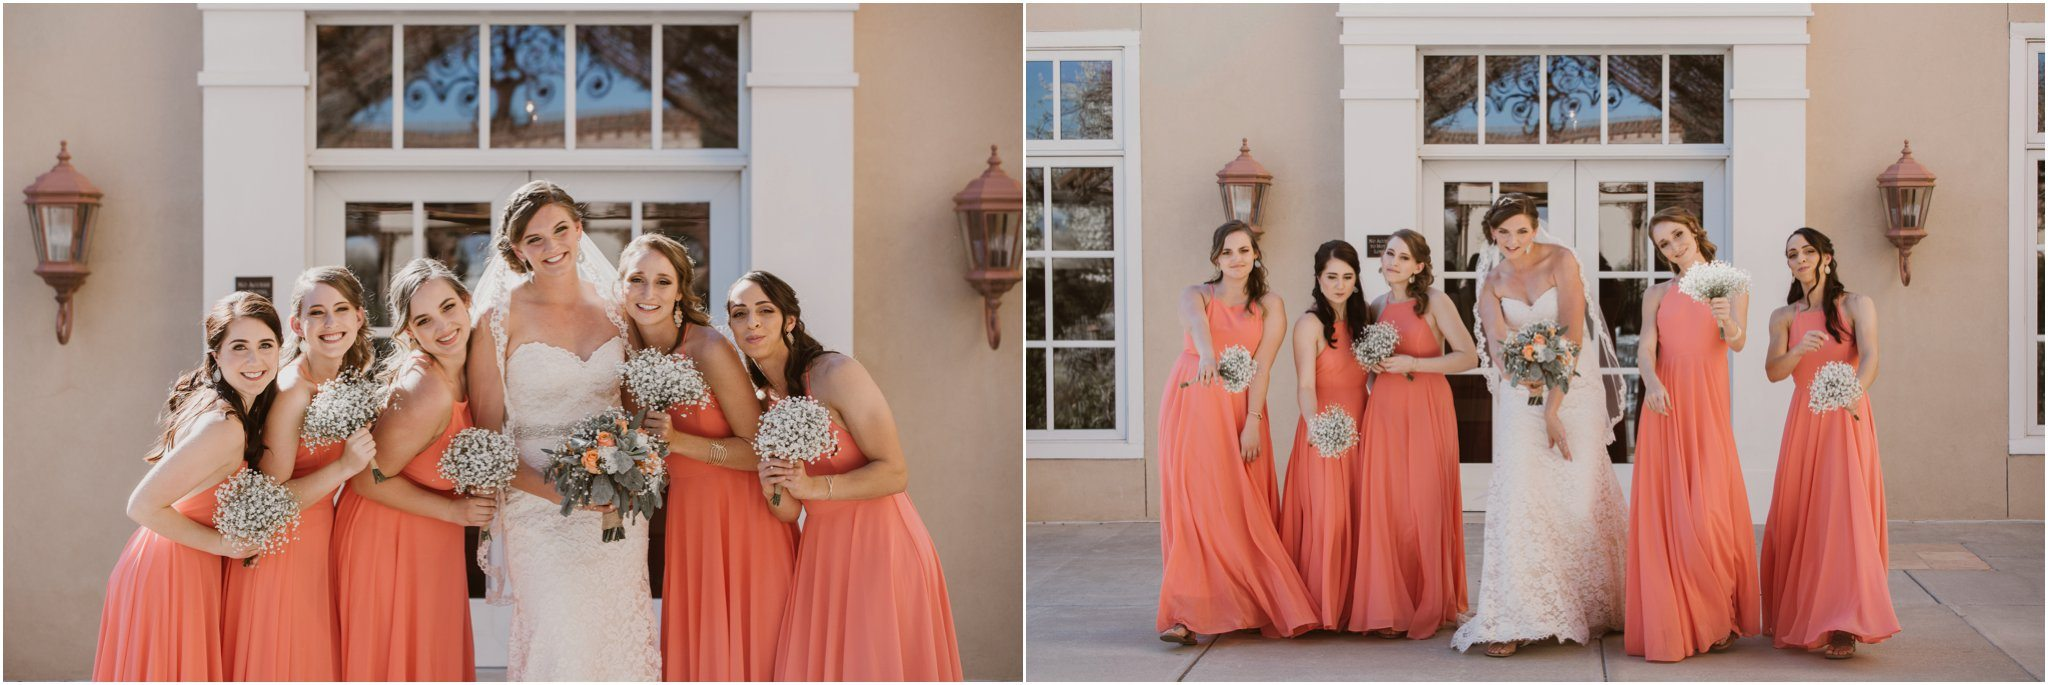 31Blue Rose Photography_ Albuquerque Wedding Photographer_ Santa Fe Wedding Photographers